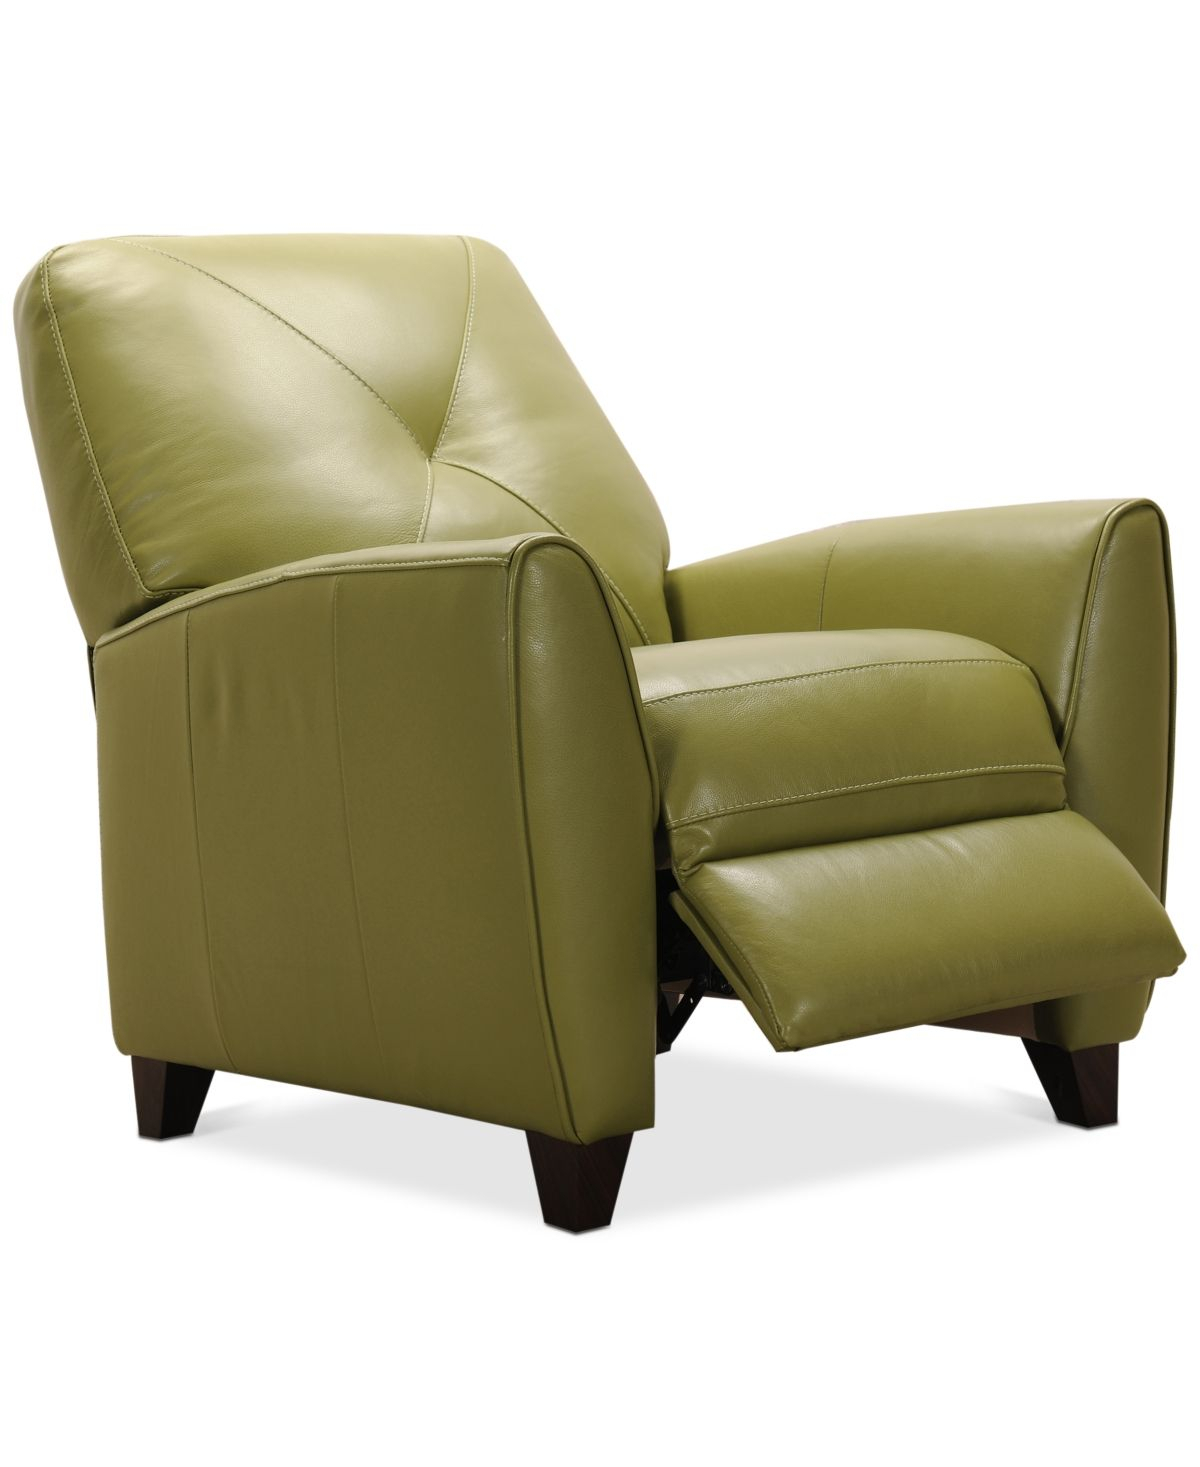 Furniture Myia Leather Pushback Recliner, Created For Macy'S For Myia Armchairs (View 9 of 15)